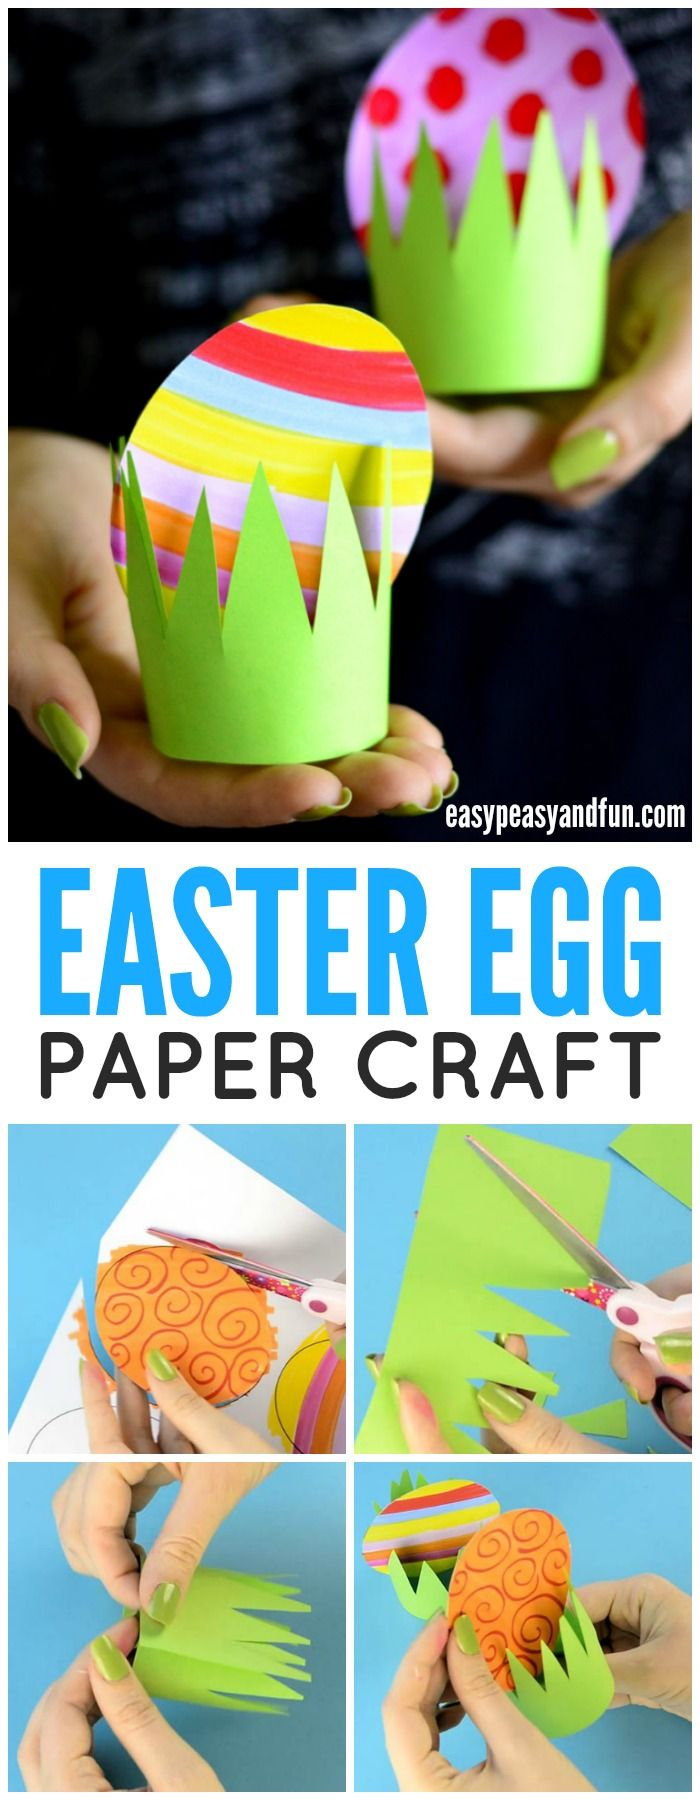 Paper Easter Egg Craft Idea